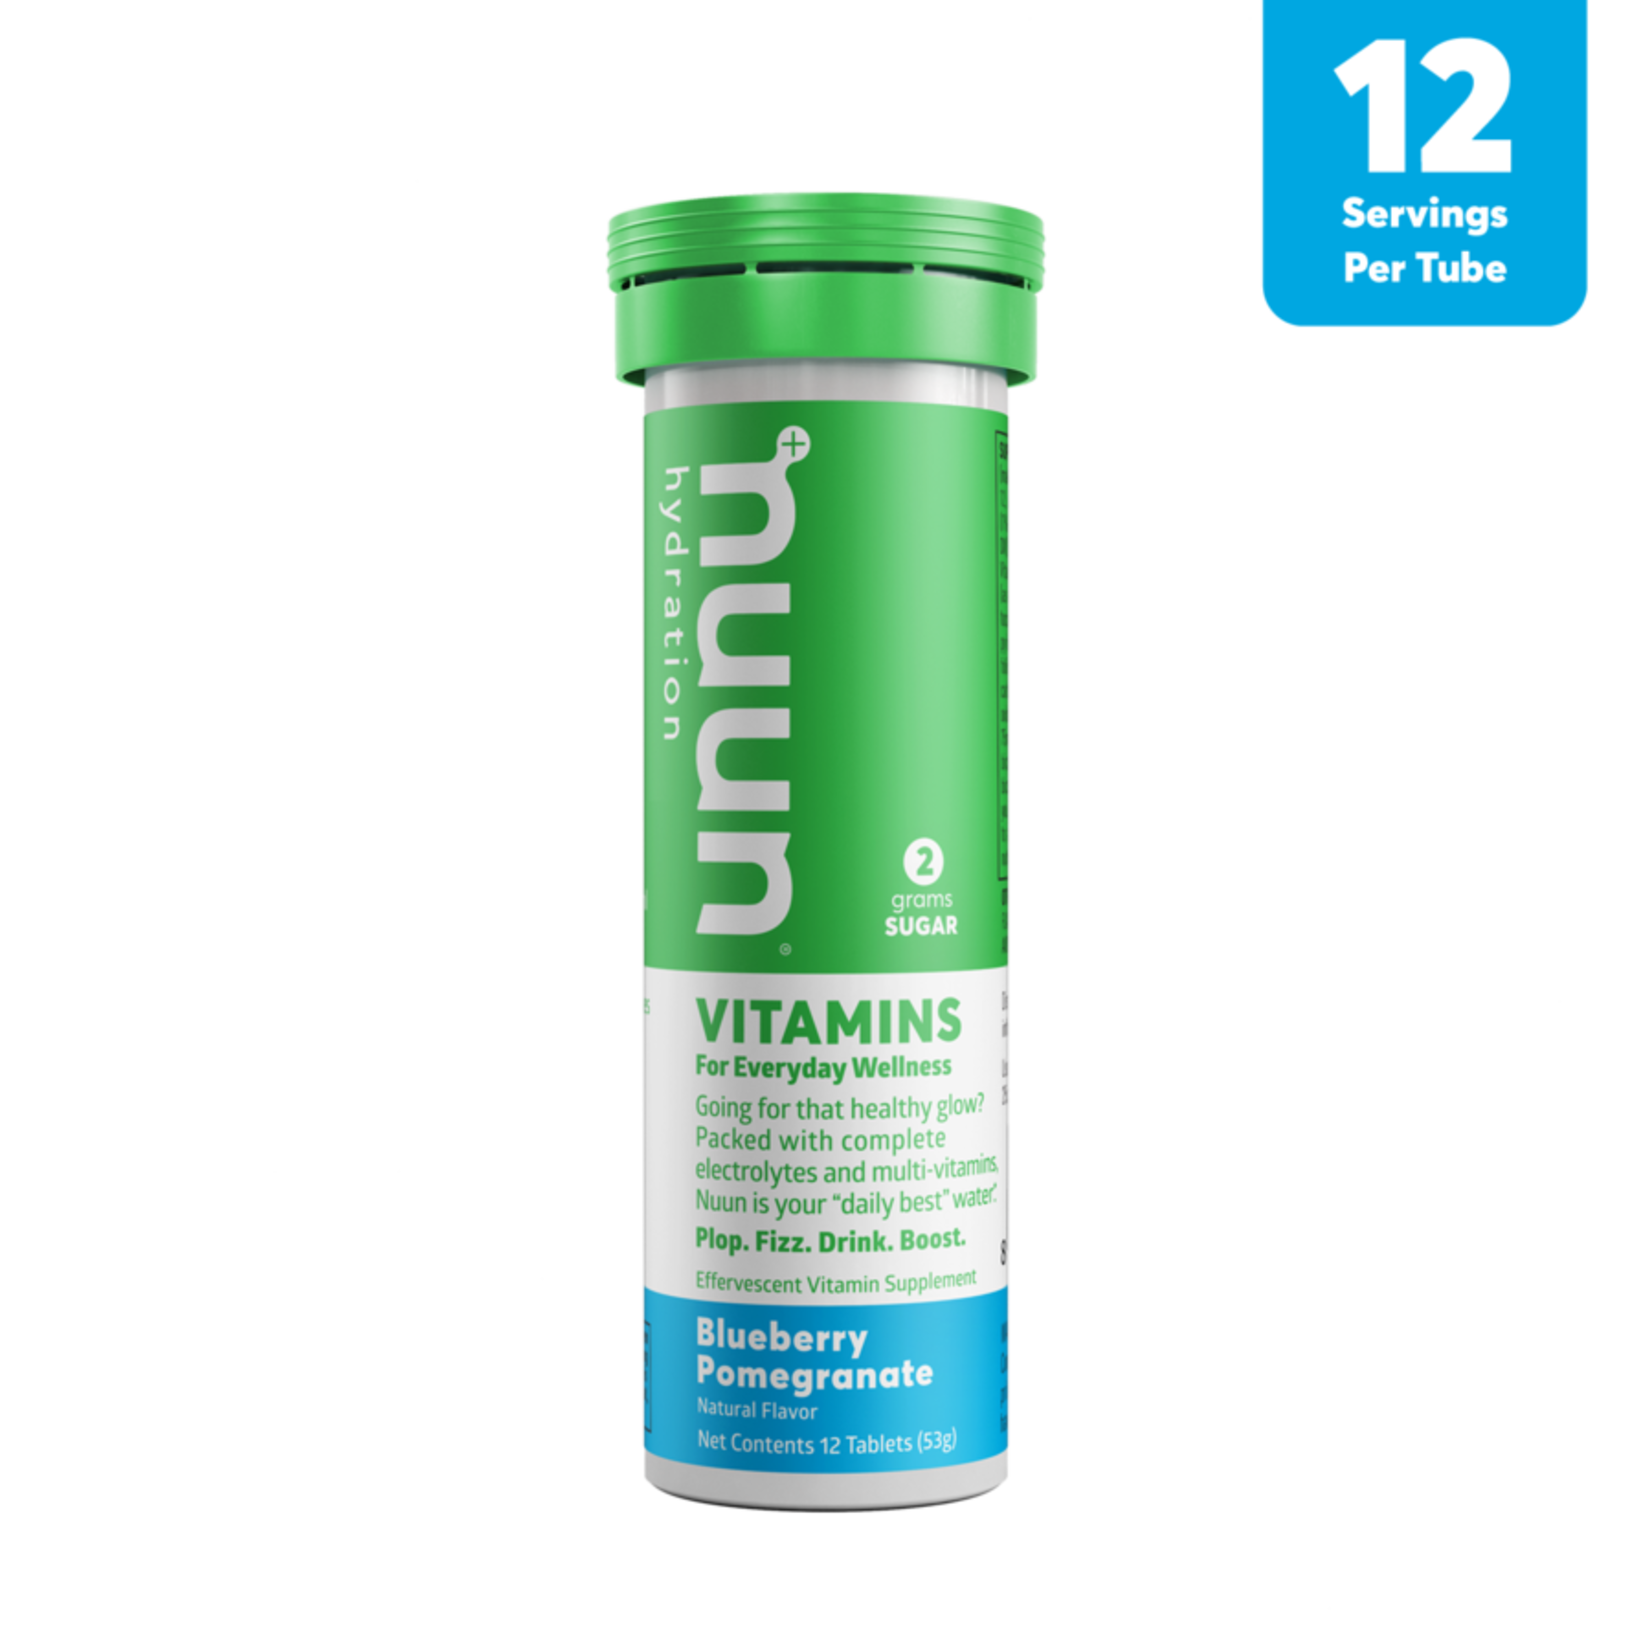 Nuun Vitamin - Blueberry Pomegranate